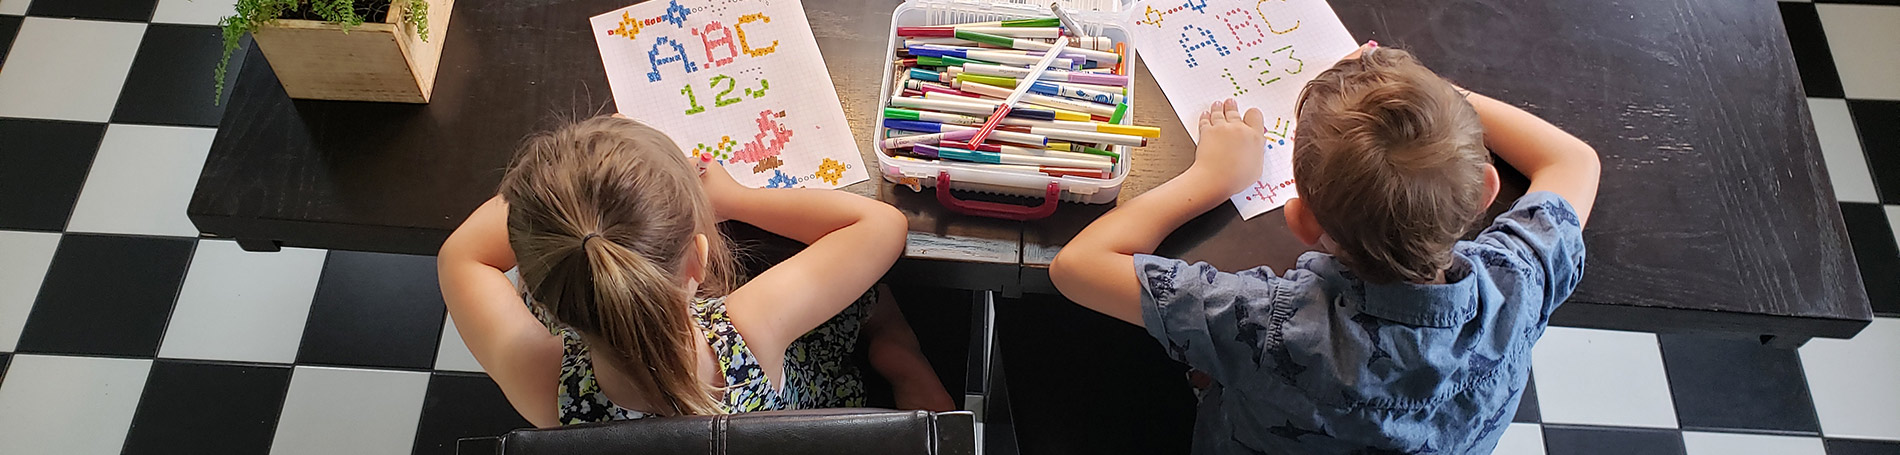 Two children sitting at a table with markers and paper.